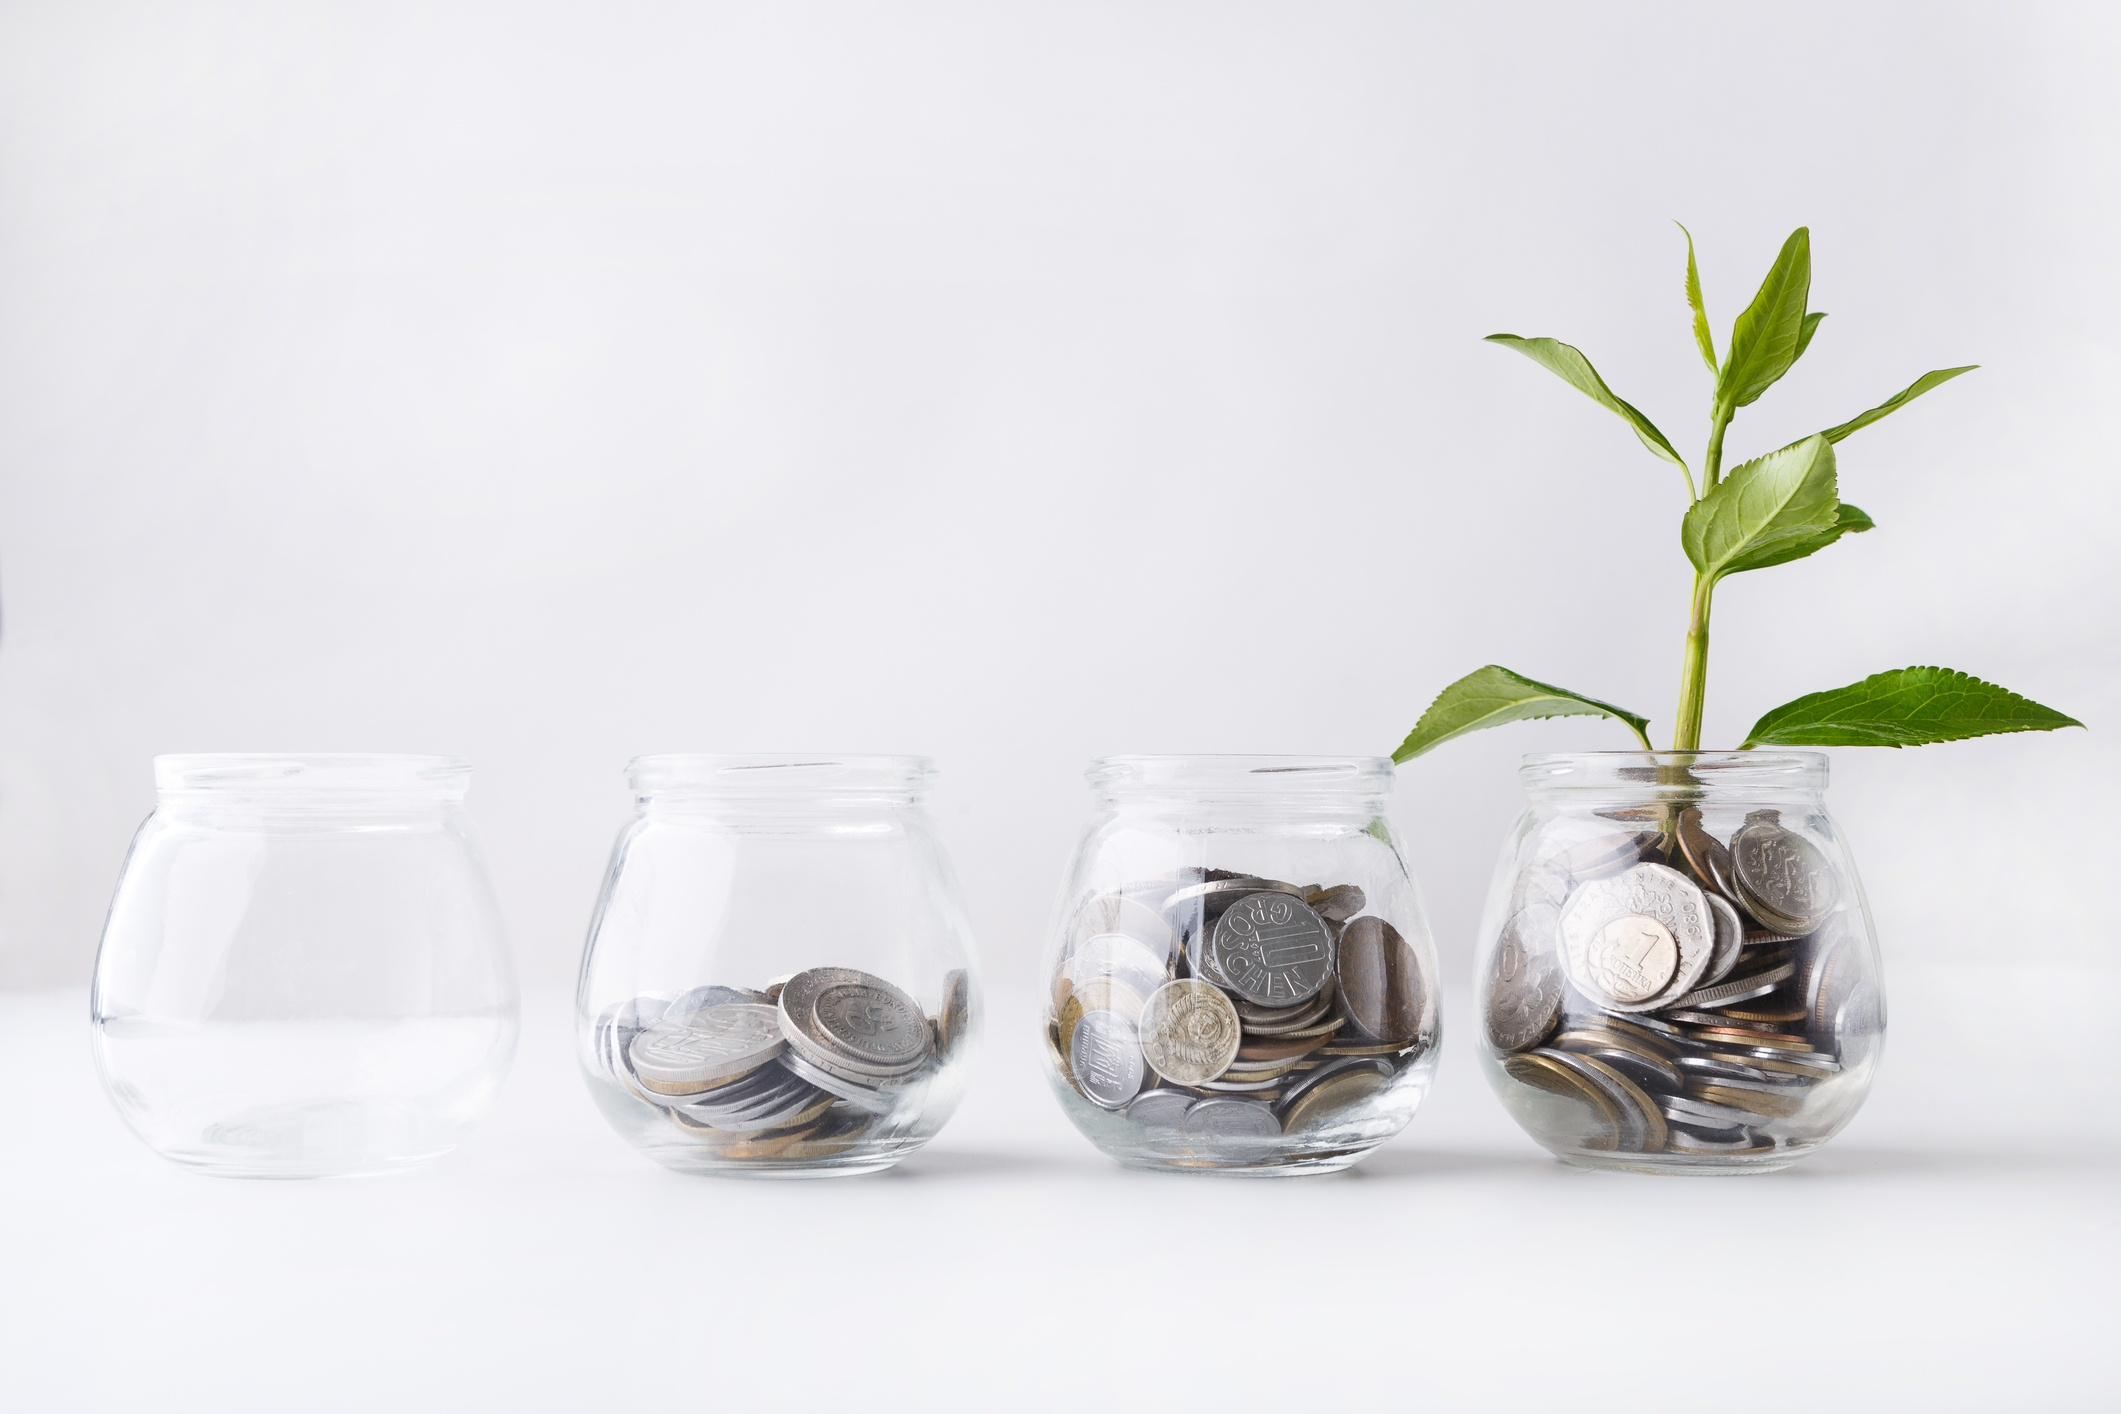 A row of glass jars with the first being empty and the others increasingly full of coins and the final one has a plant sprouting from it.